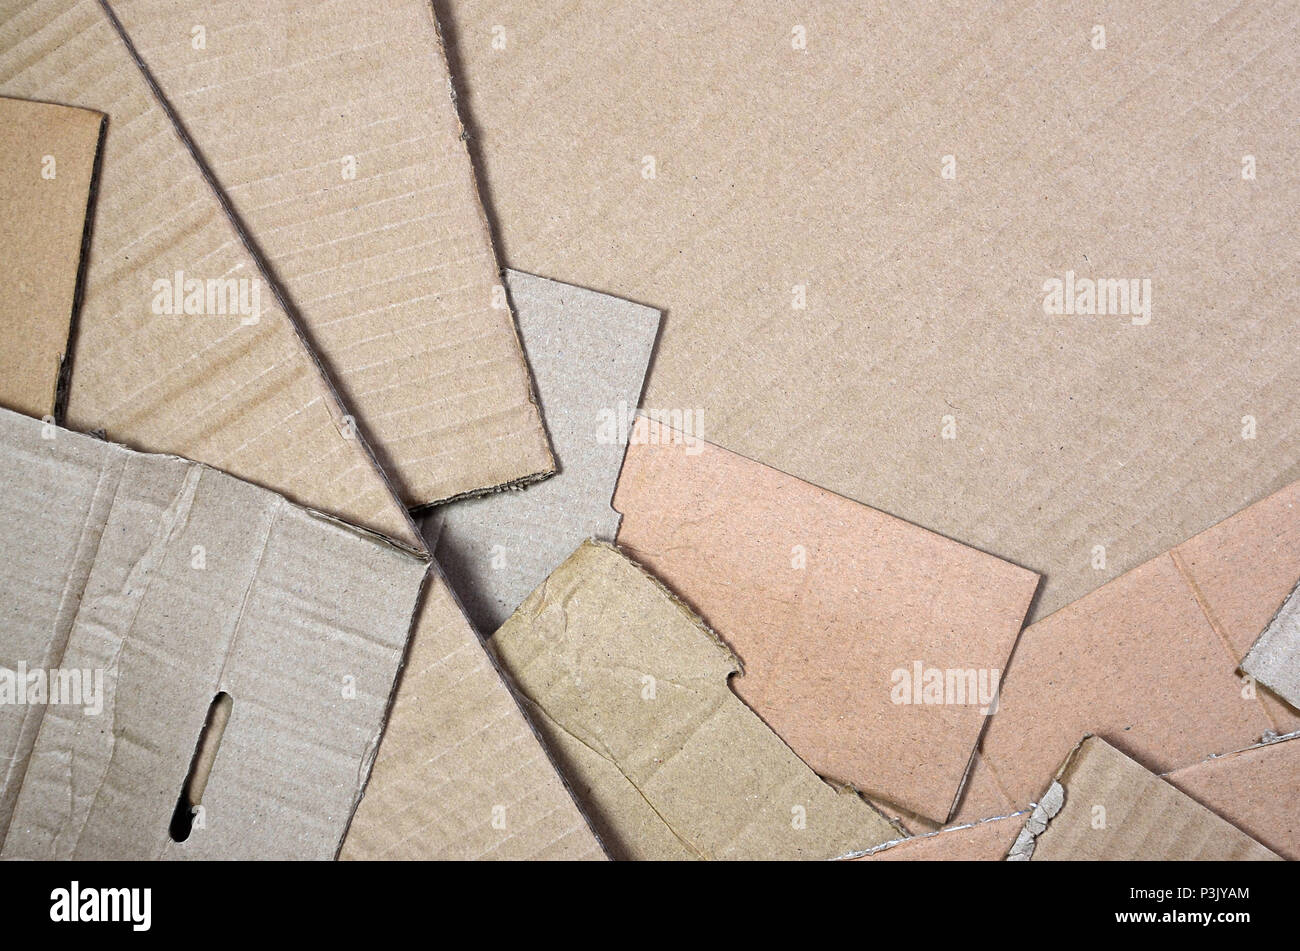 Background of paper textures piled ready to recycle. A pack of old office cardboard for recycling of waste paper. Pile of wastepaper - Stock Image